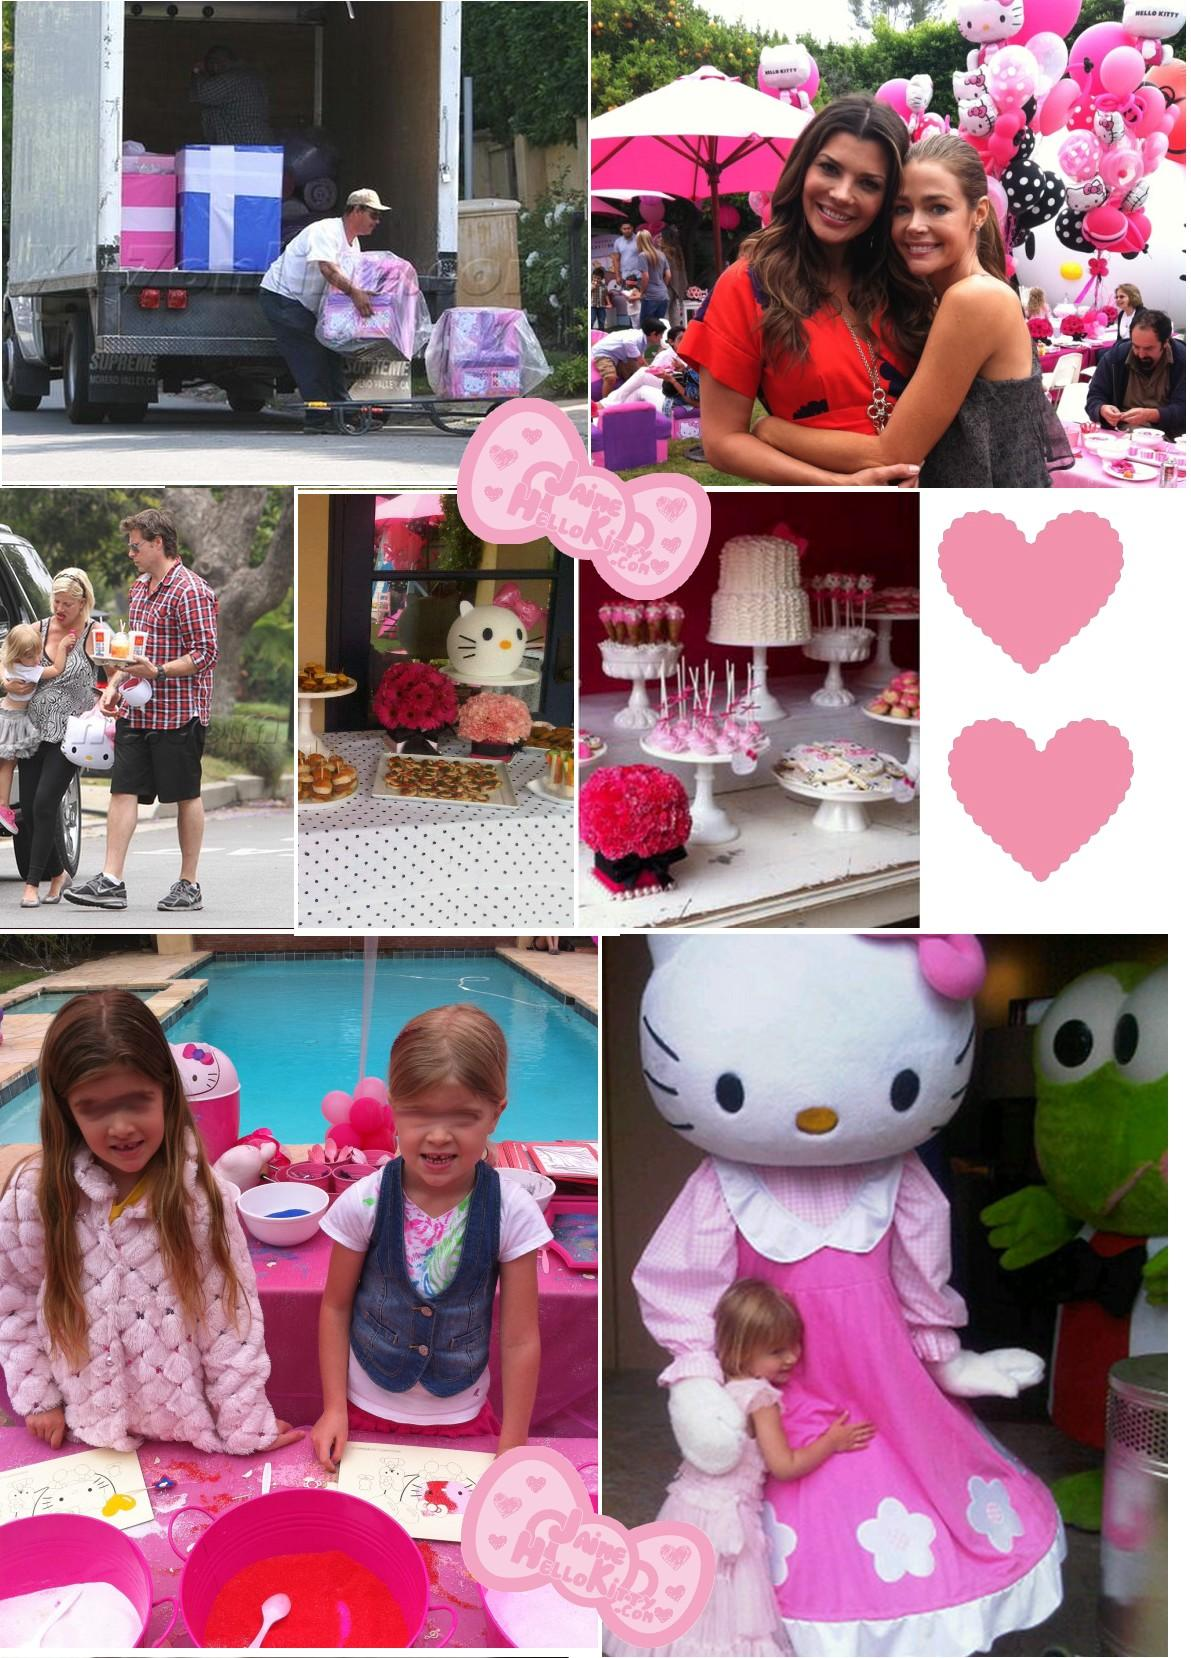 http://www.jaimehellokitty.com/images/ARTICLES008/torispellingstellabirthday2011hellokitty.jpg